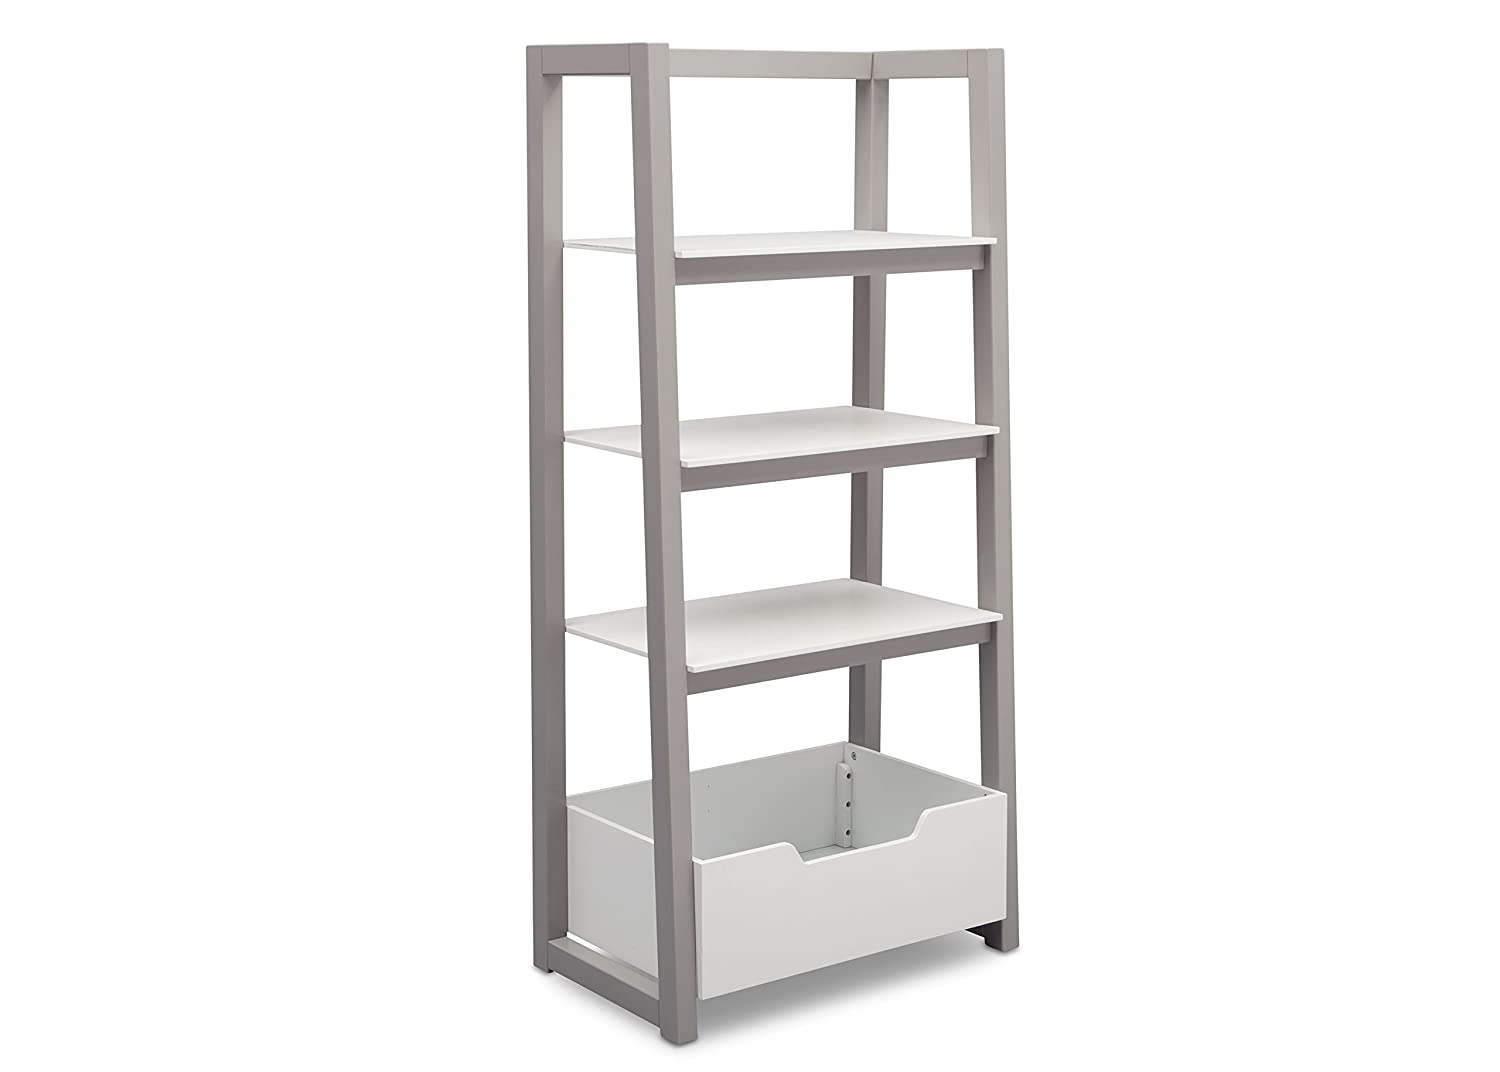 Delta Children Ladder Shelf, White/Grey